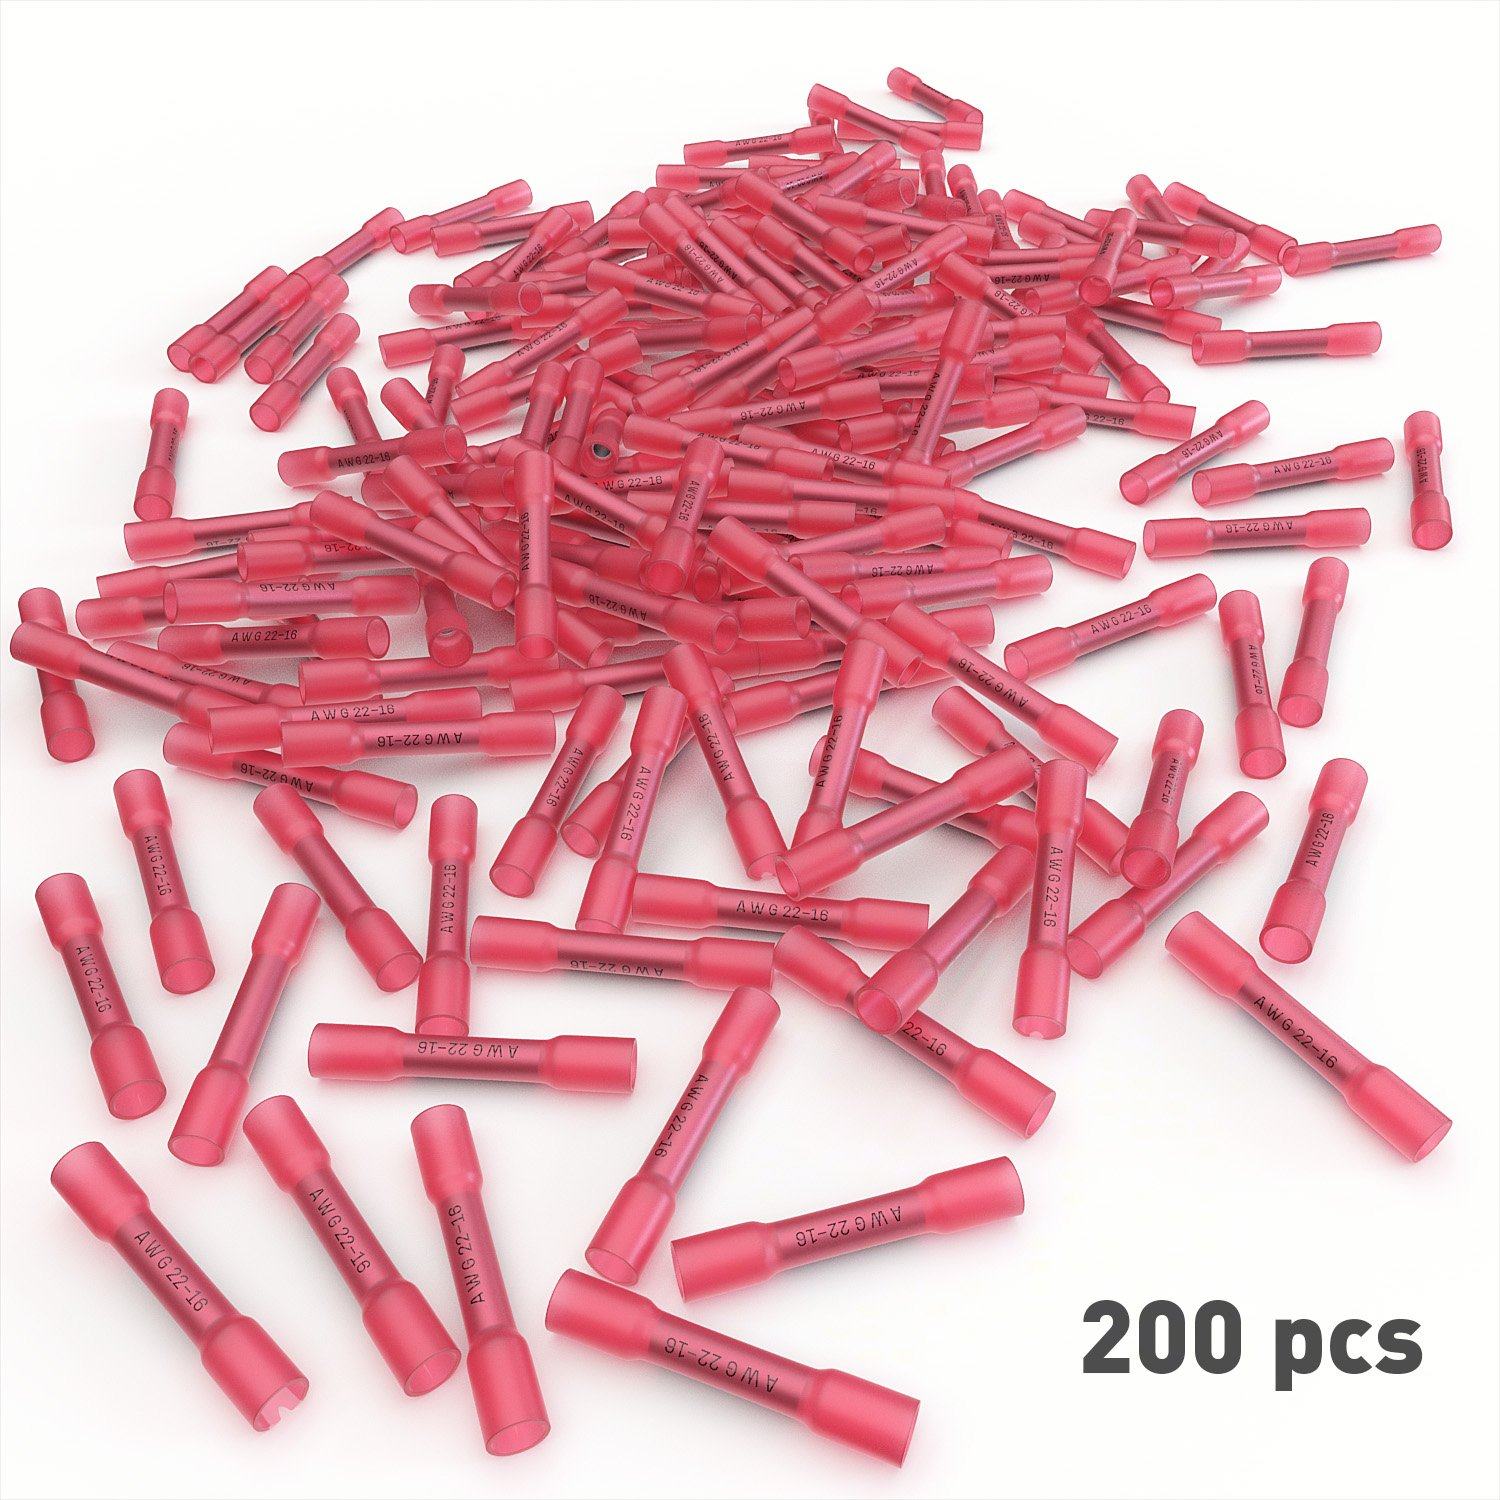 Audio Marine and Industrial Grade Hot Melt Adhesive Butt Splice E-VOLT EV200BC Insulated AWG Automotive 200 PC Red Heat Shrink Butt Crimp Connectors: 22 20 18 16 Gauge Bulk Waterproof Electrical Terminals